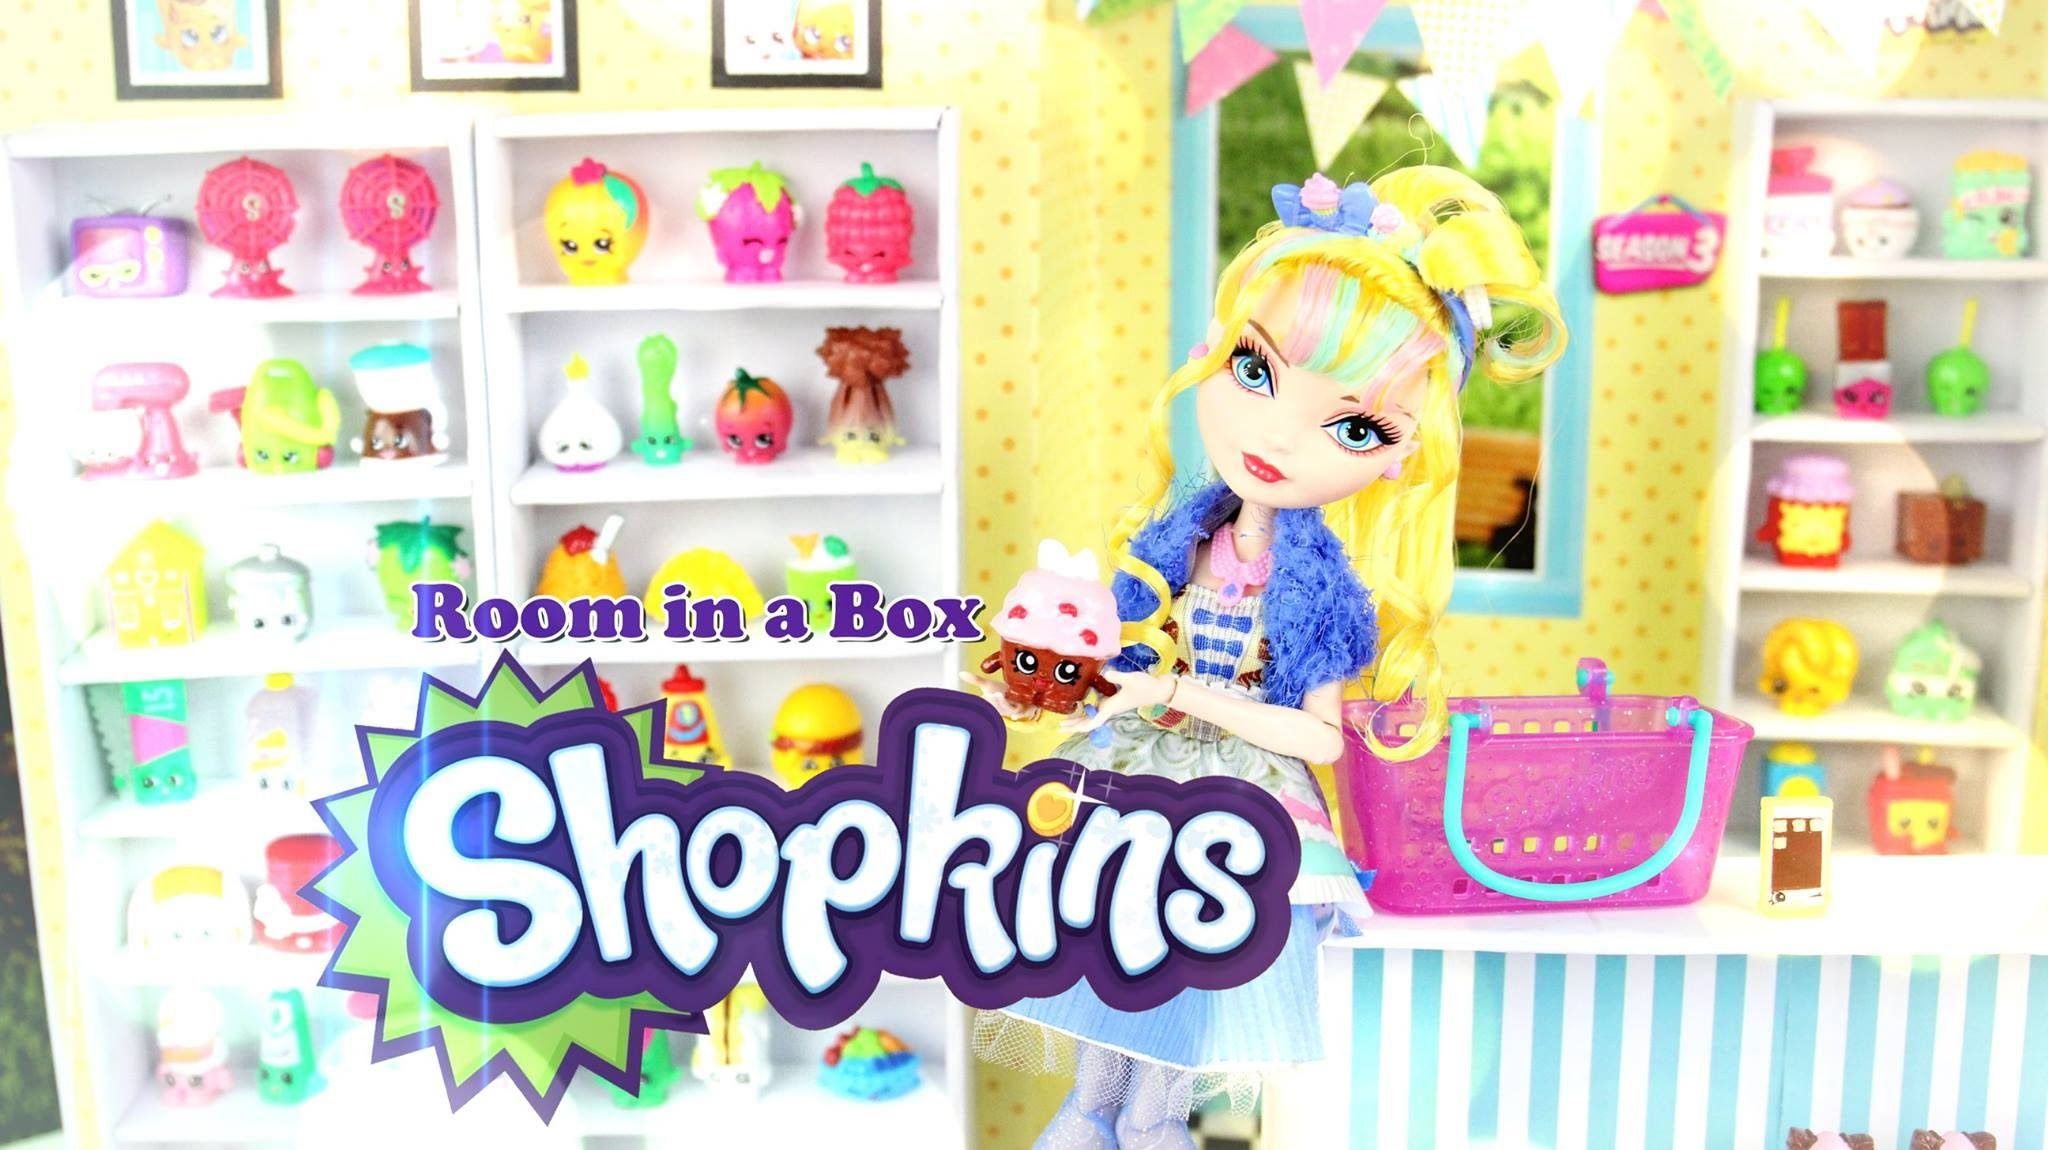 Barbie Bedroom In A Box: How To Make: Doll Room In A Box: Shopkins